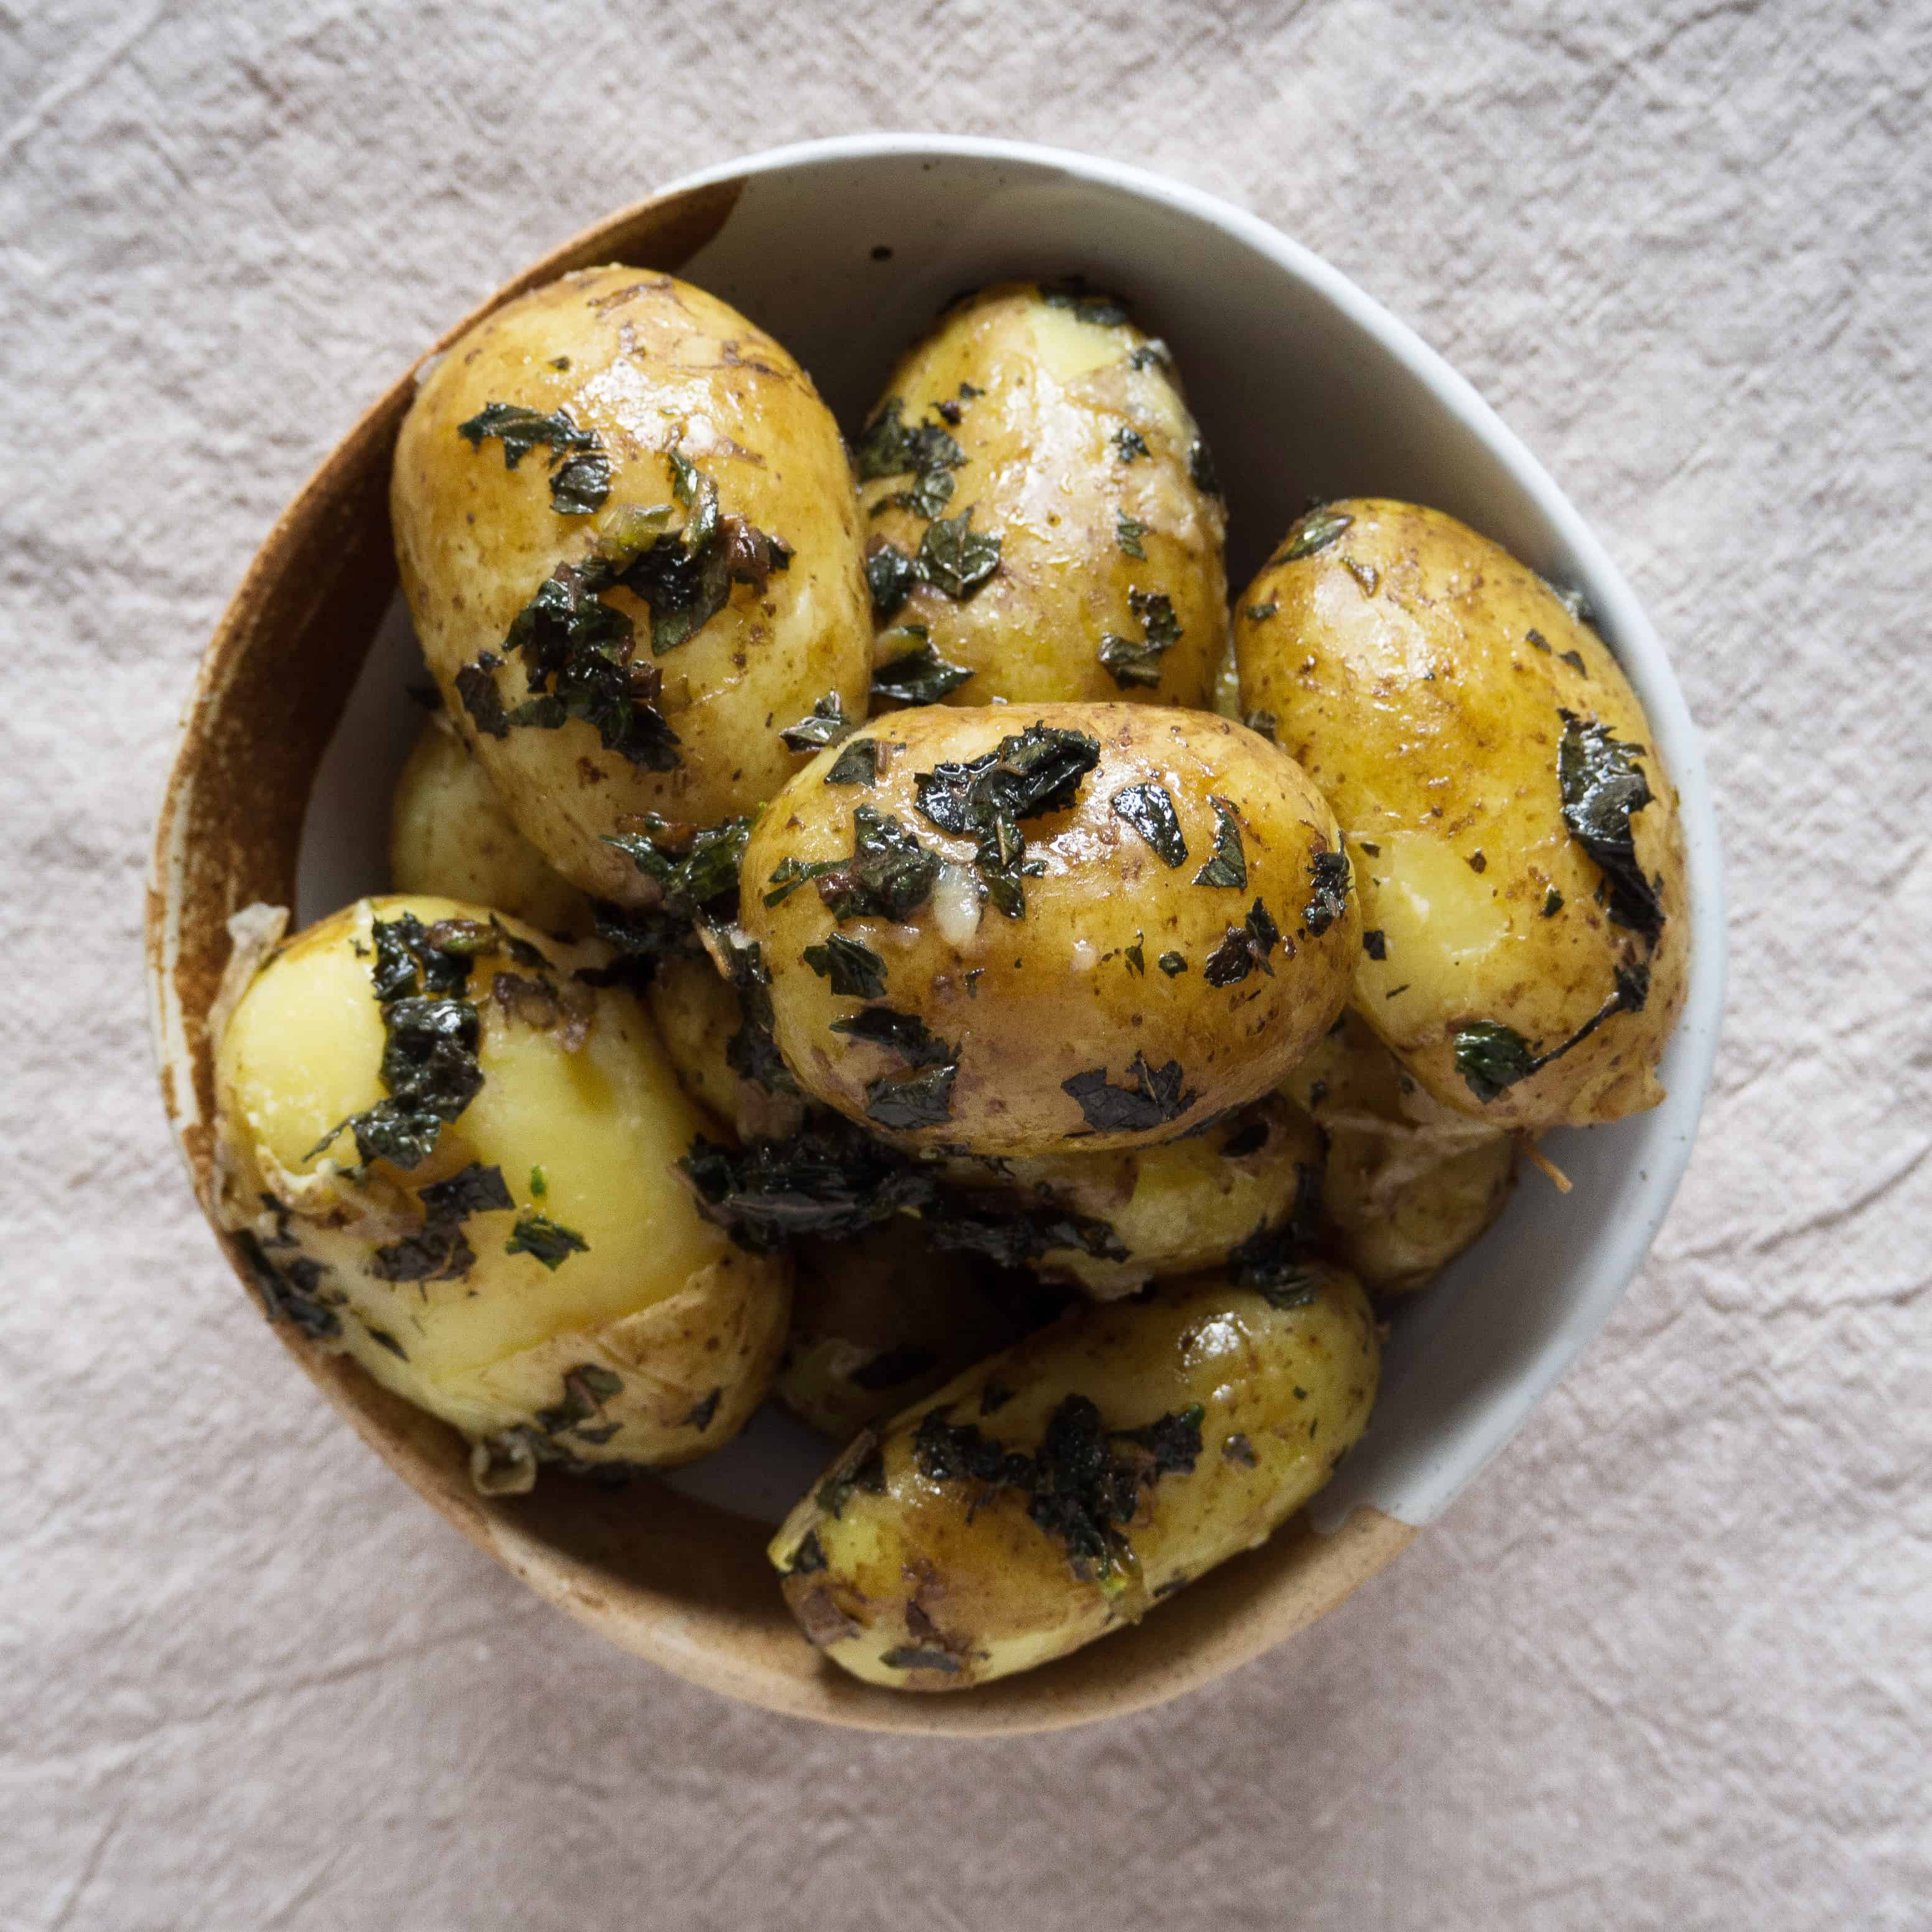 Jersey Royal potatoes with fresh mint